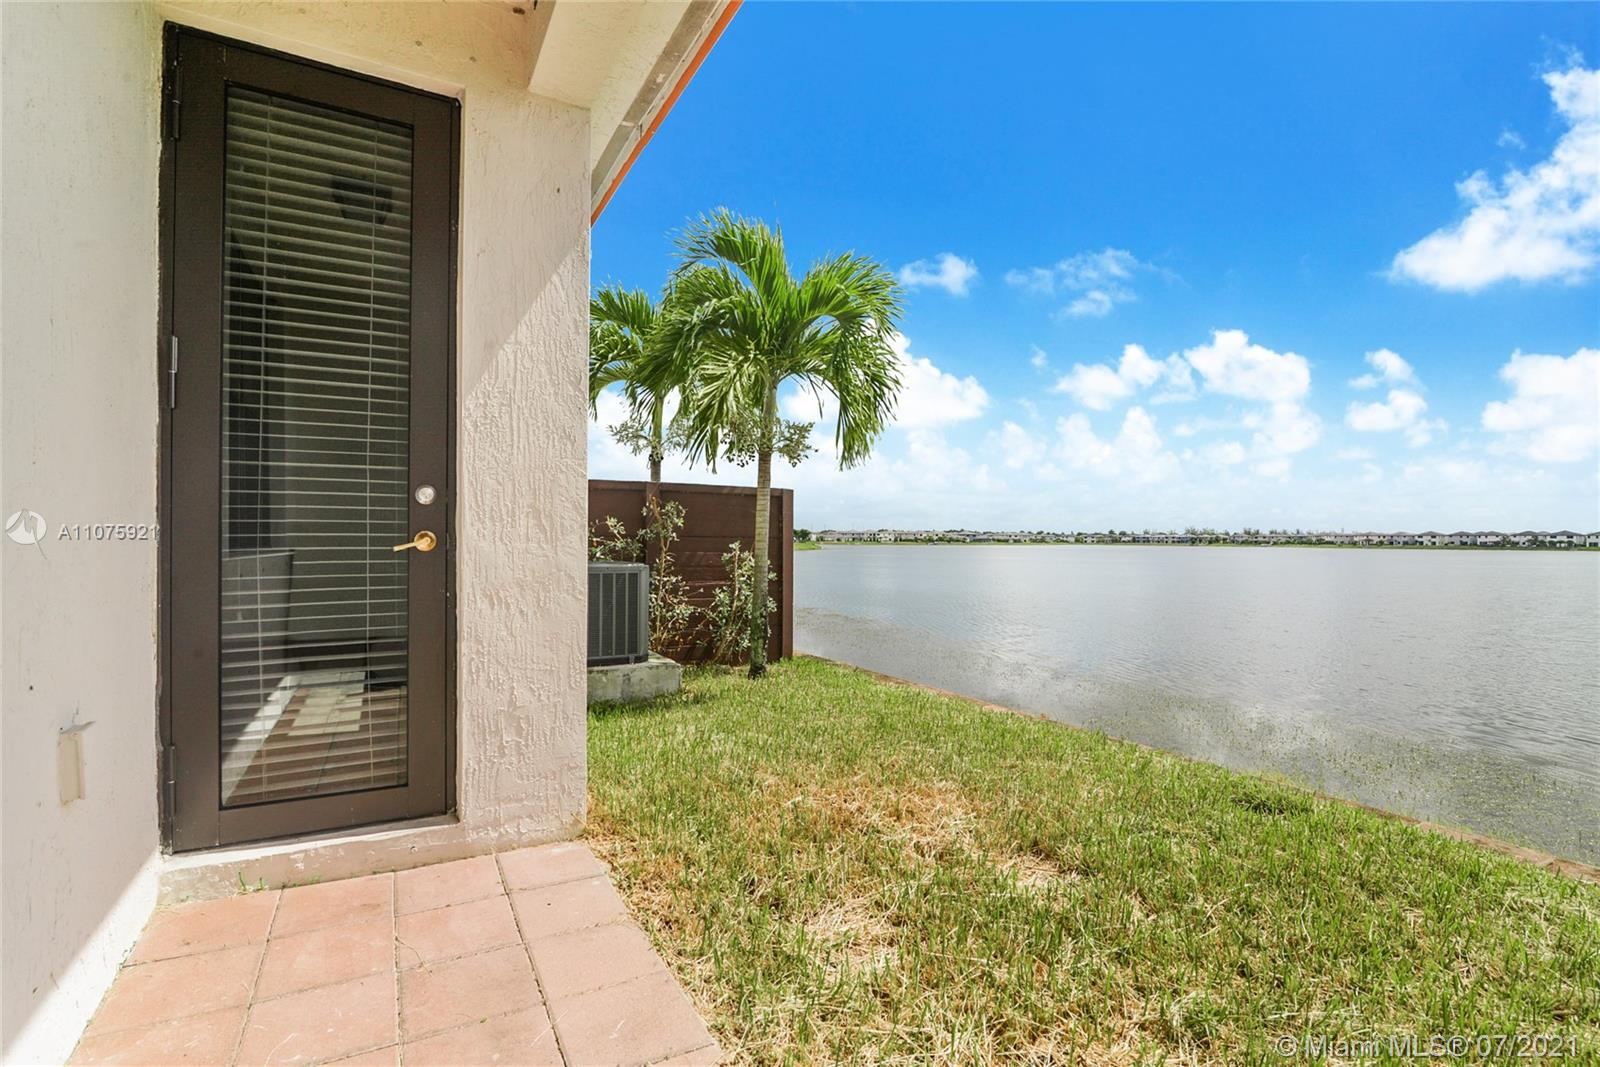 15593 NW 91st Ct #15593 For Sale A11075921, FL